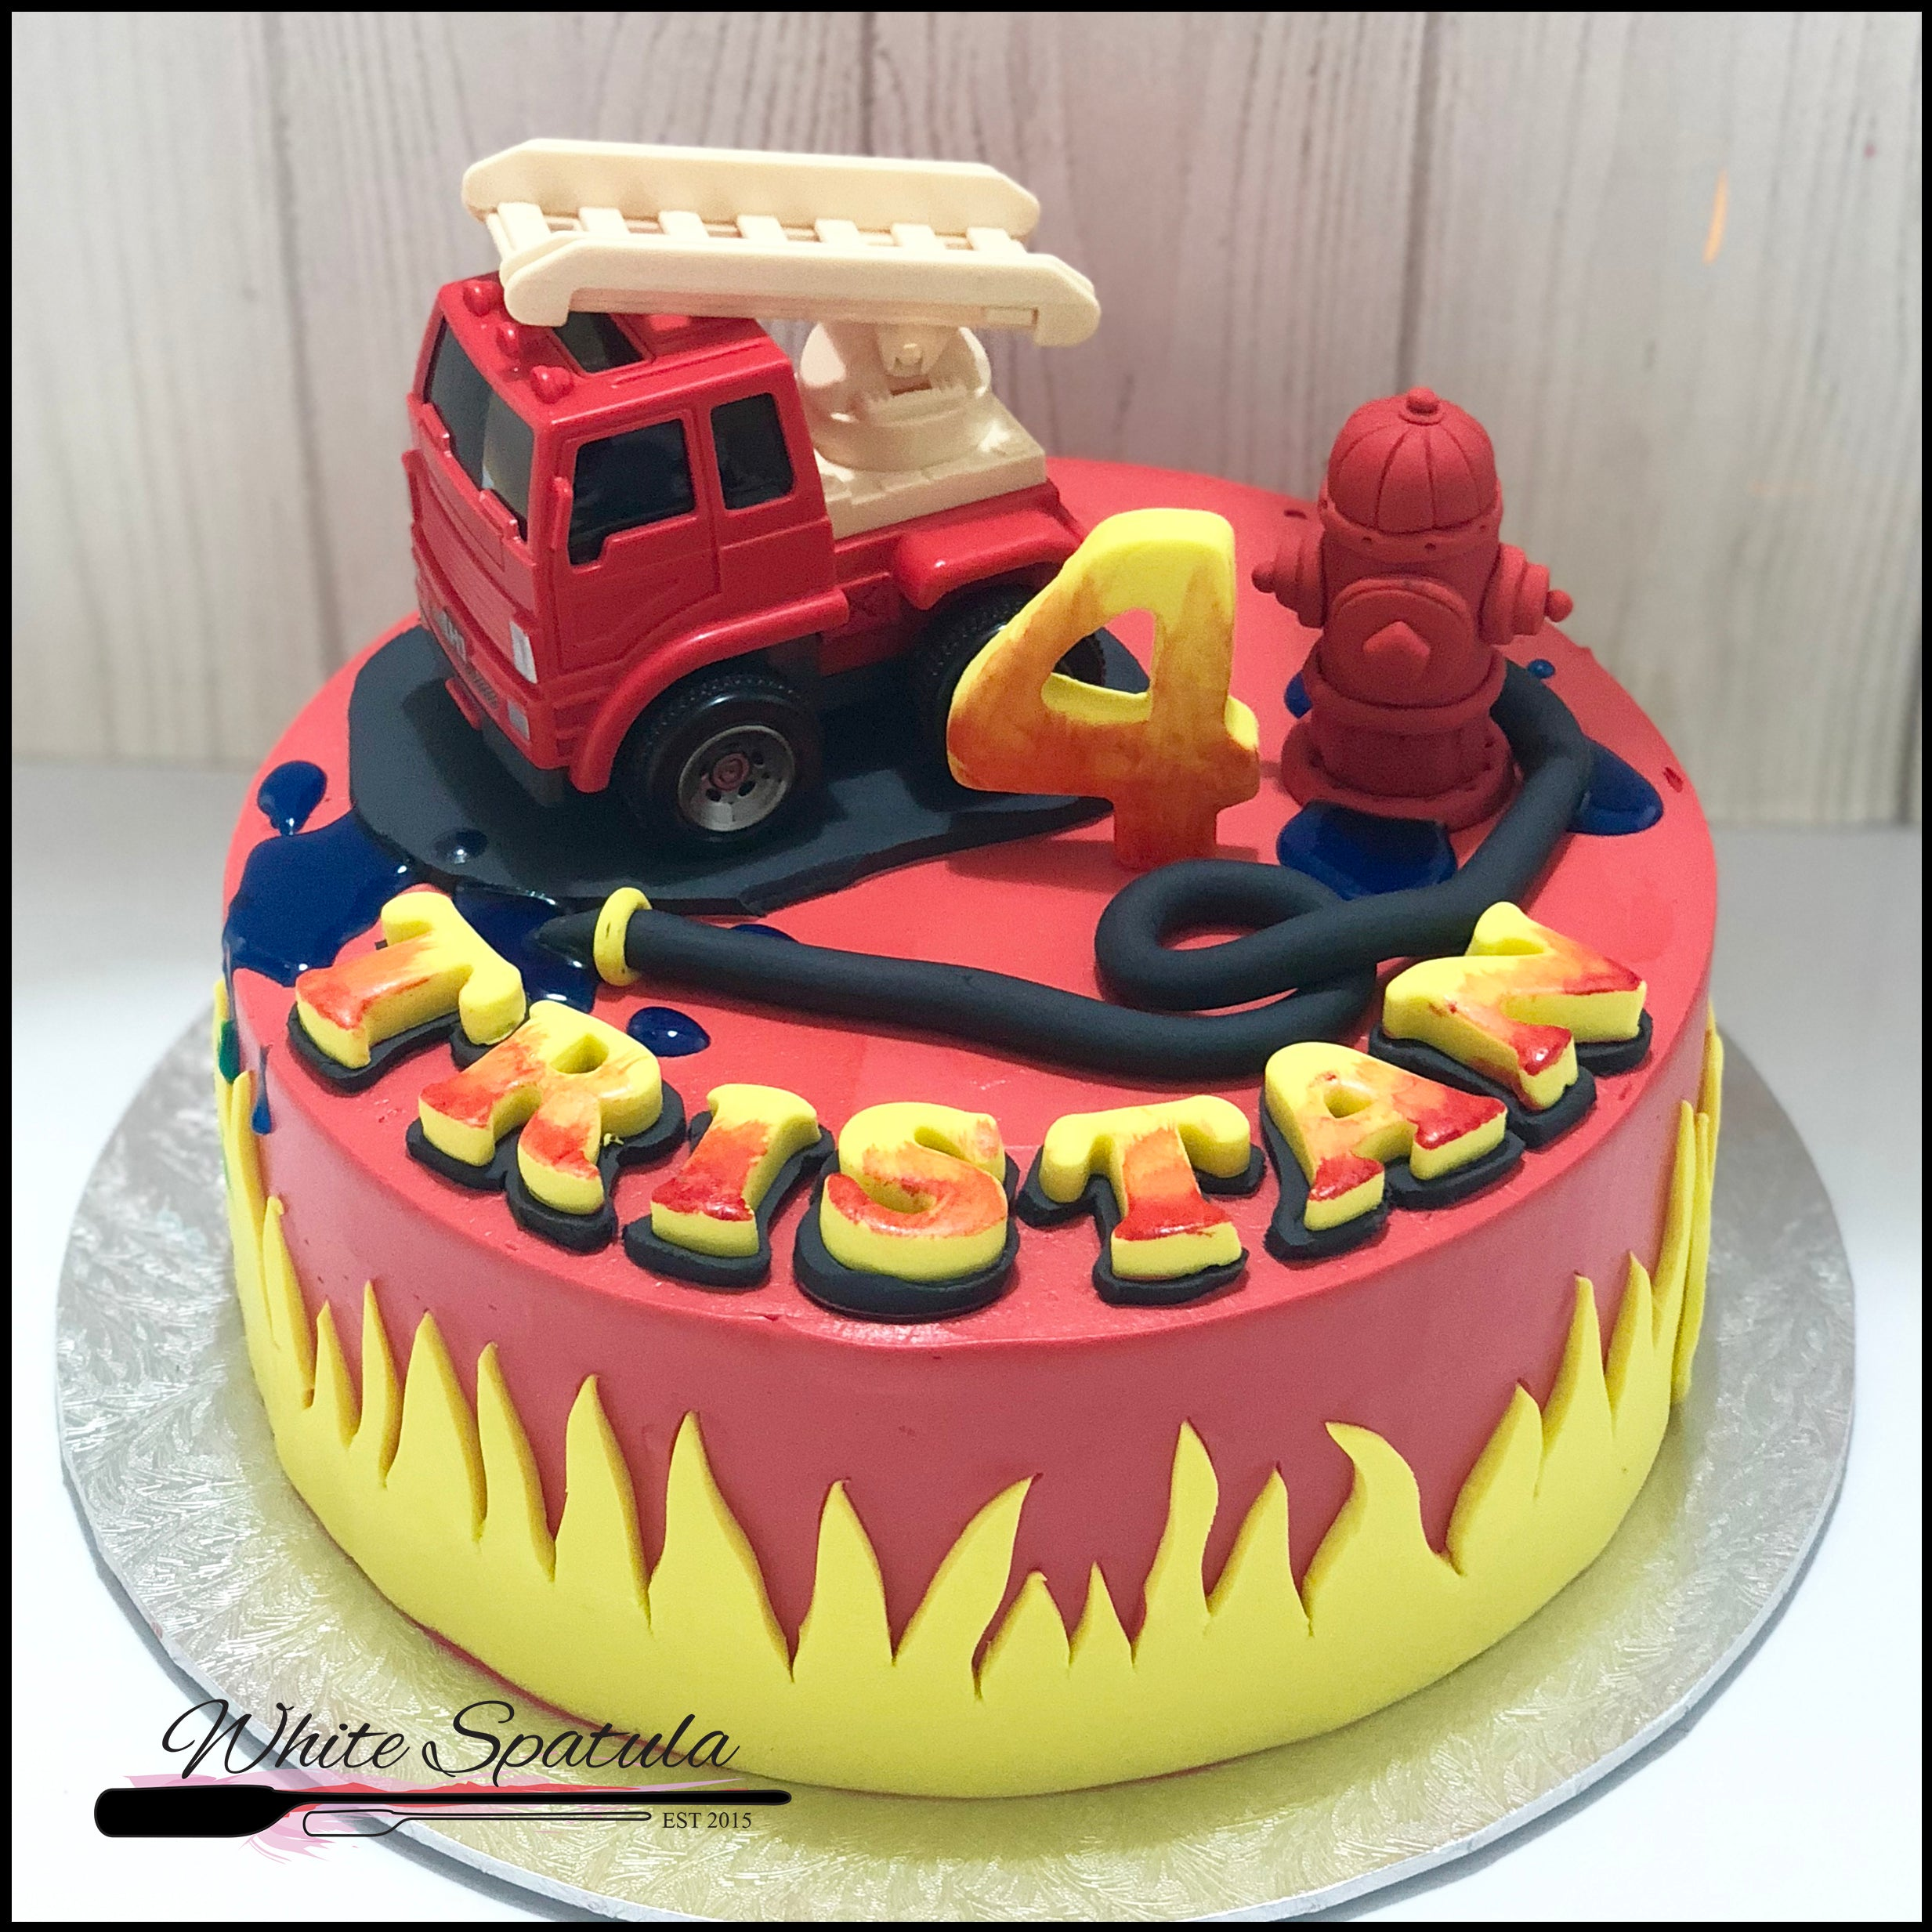 Awe Inspiring Fire Engine Buttercream Cake Singapore White Spatula Personalised Birthday Cards Arneslily Jamesorg